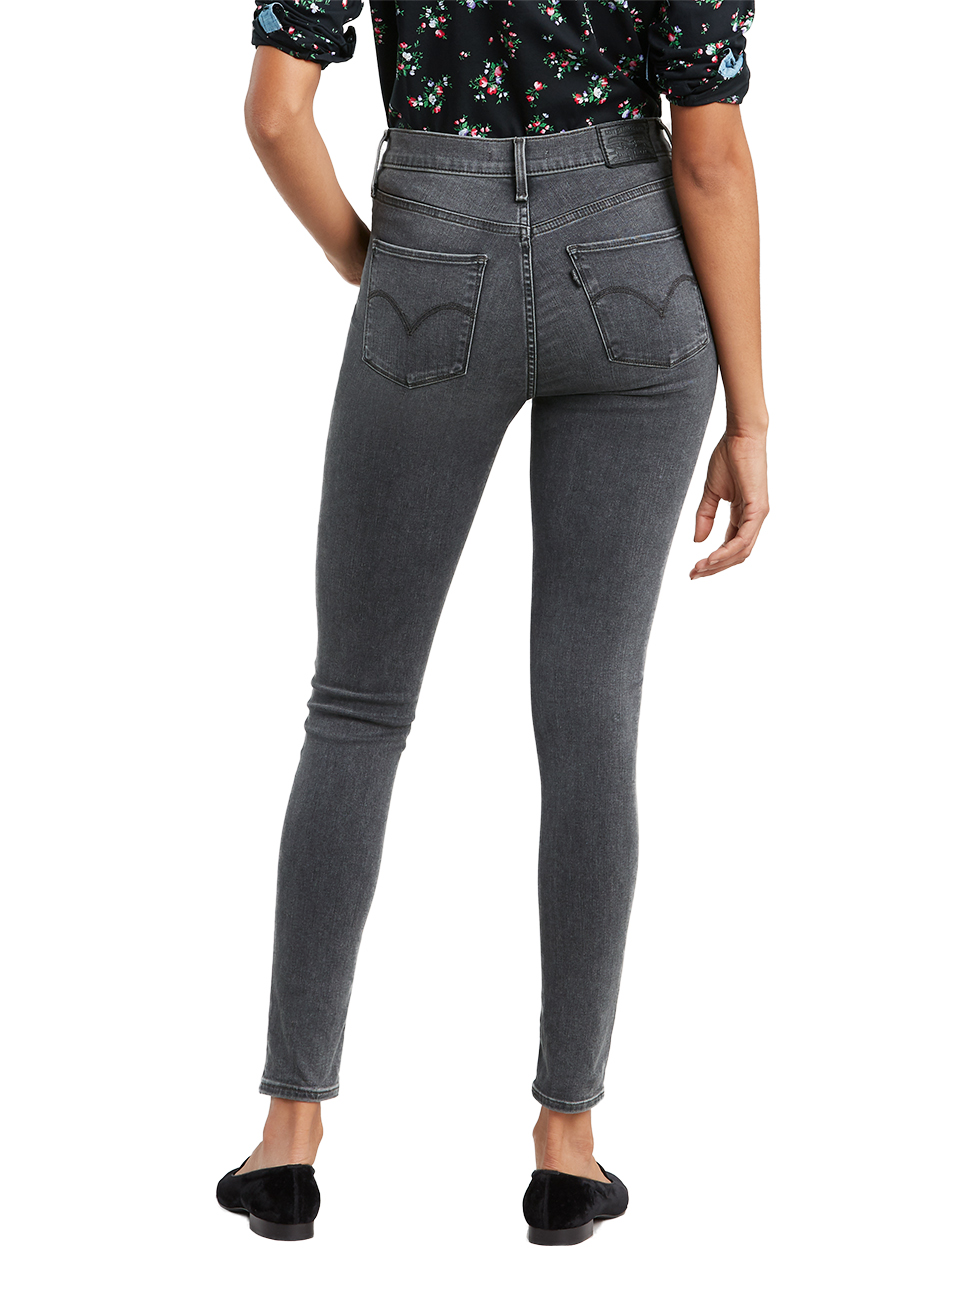 levis-damen-jeans-310-shaping-super-skinny-fit-grau-1-shade-of-grey